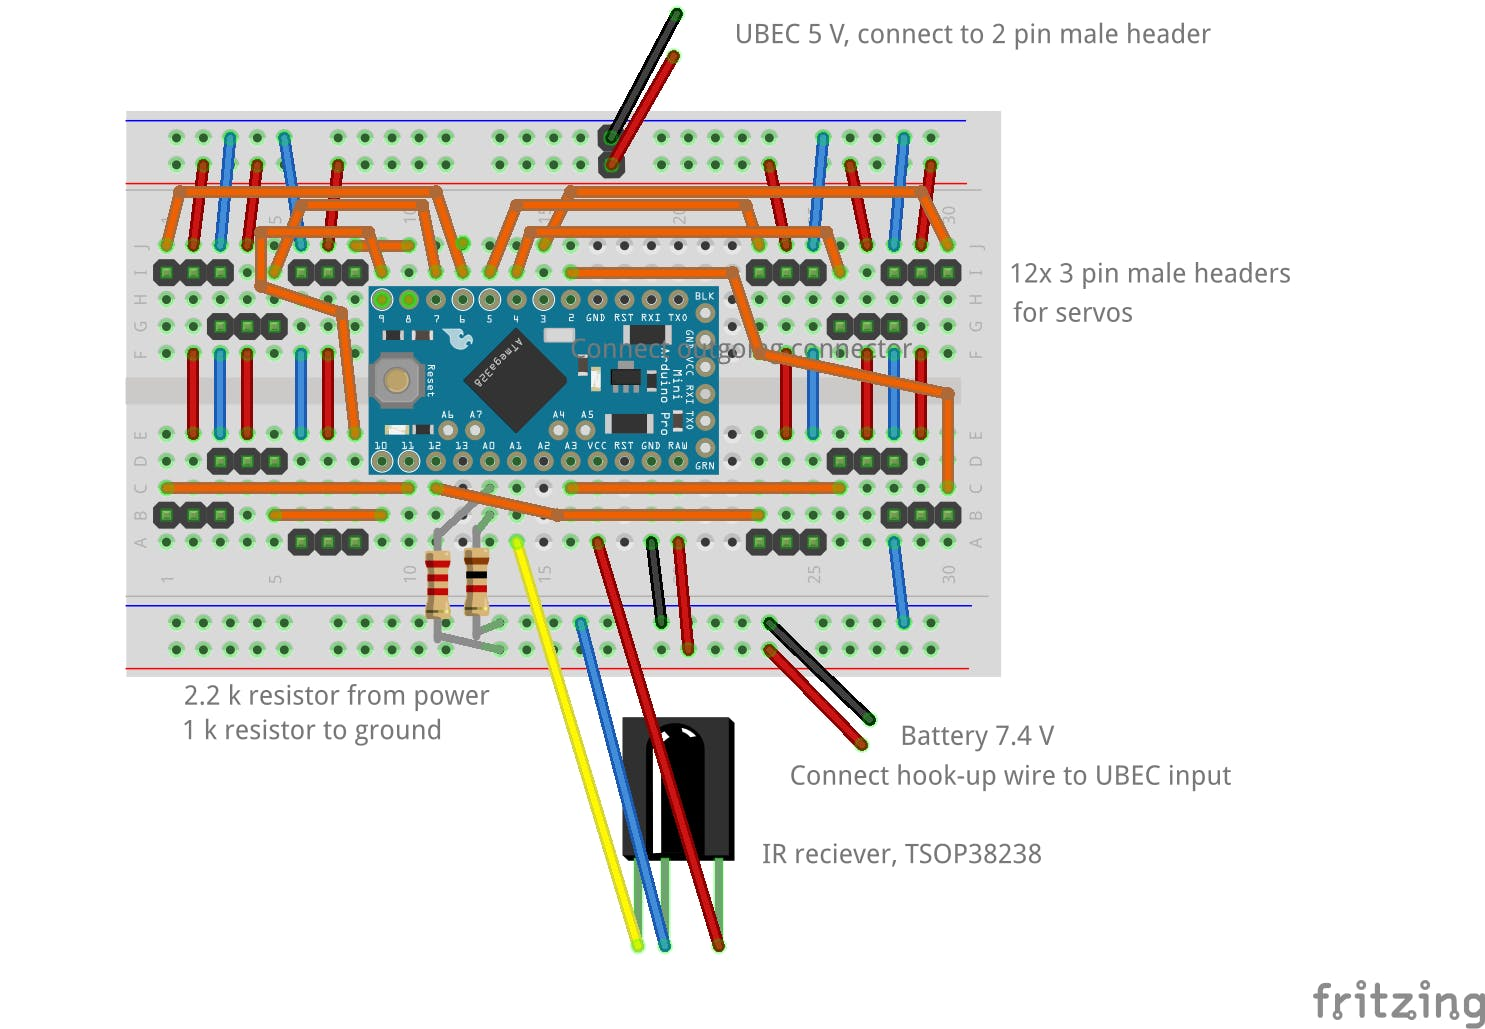 Schematic, breadboard version